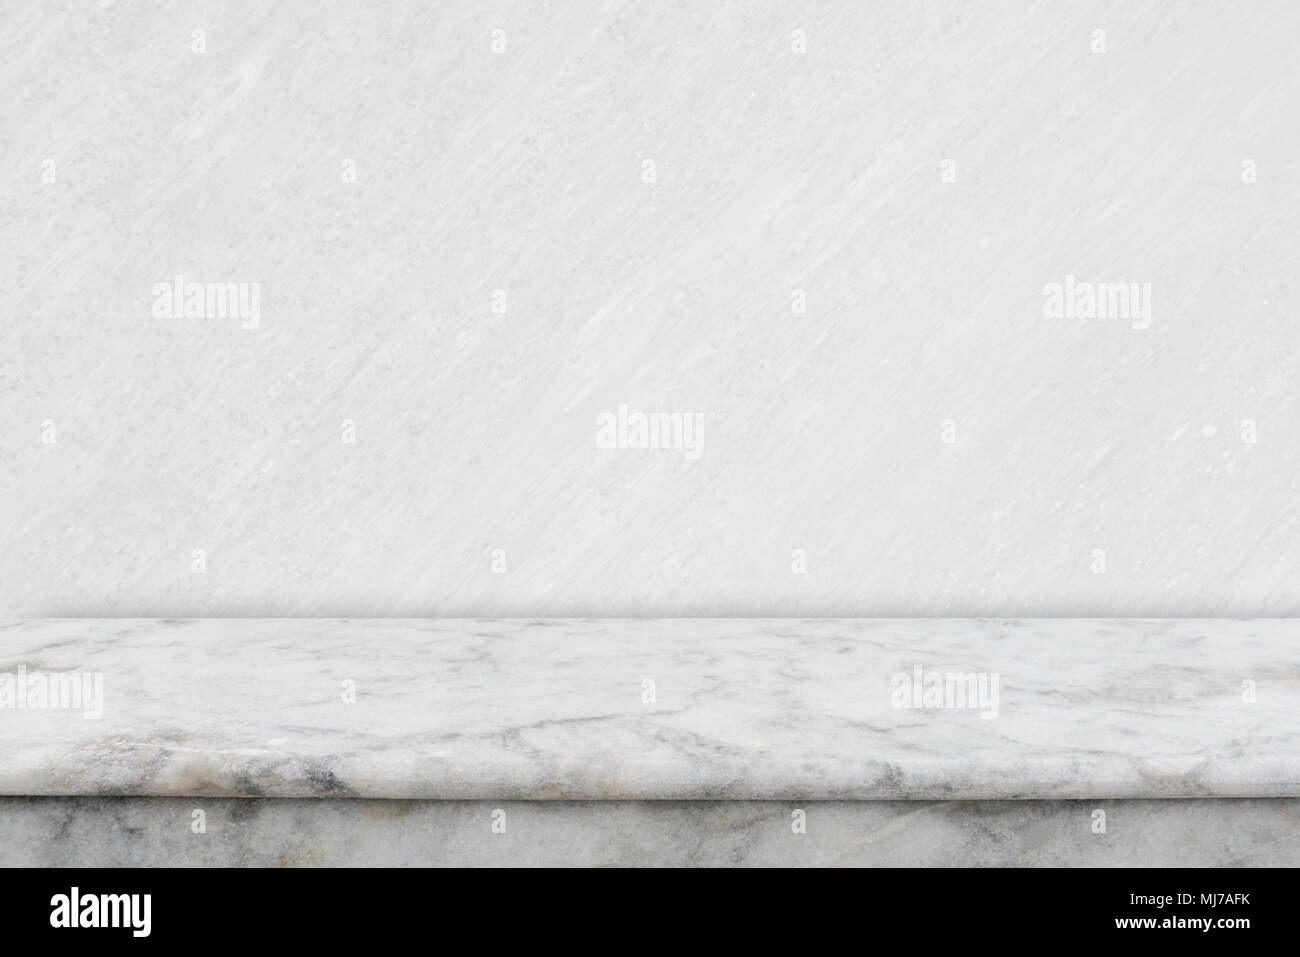 White marble table top Circular Abstract Background From Empty White Marble Table Top For Showing Product Advertising With White Concrete Background Picture For Add Text Message Ba Frequencysitecom Abstract Background From Empty White Marble Table Top For Showing